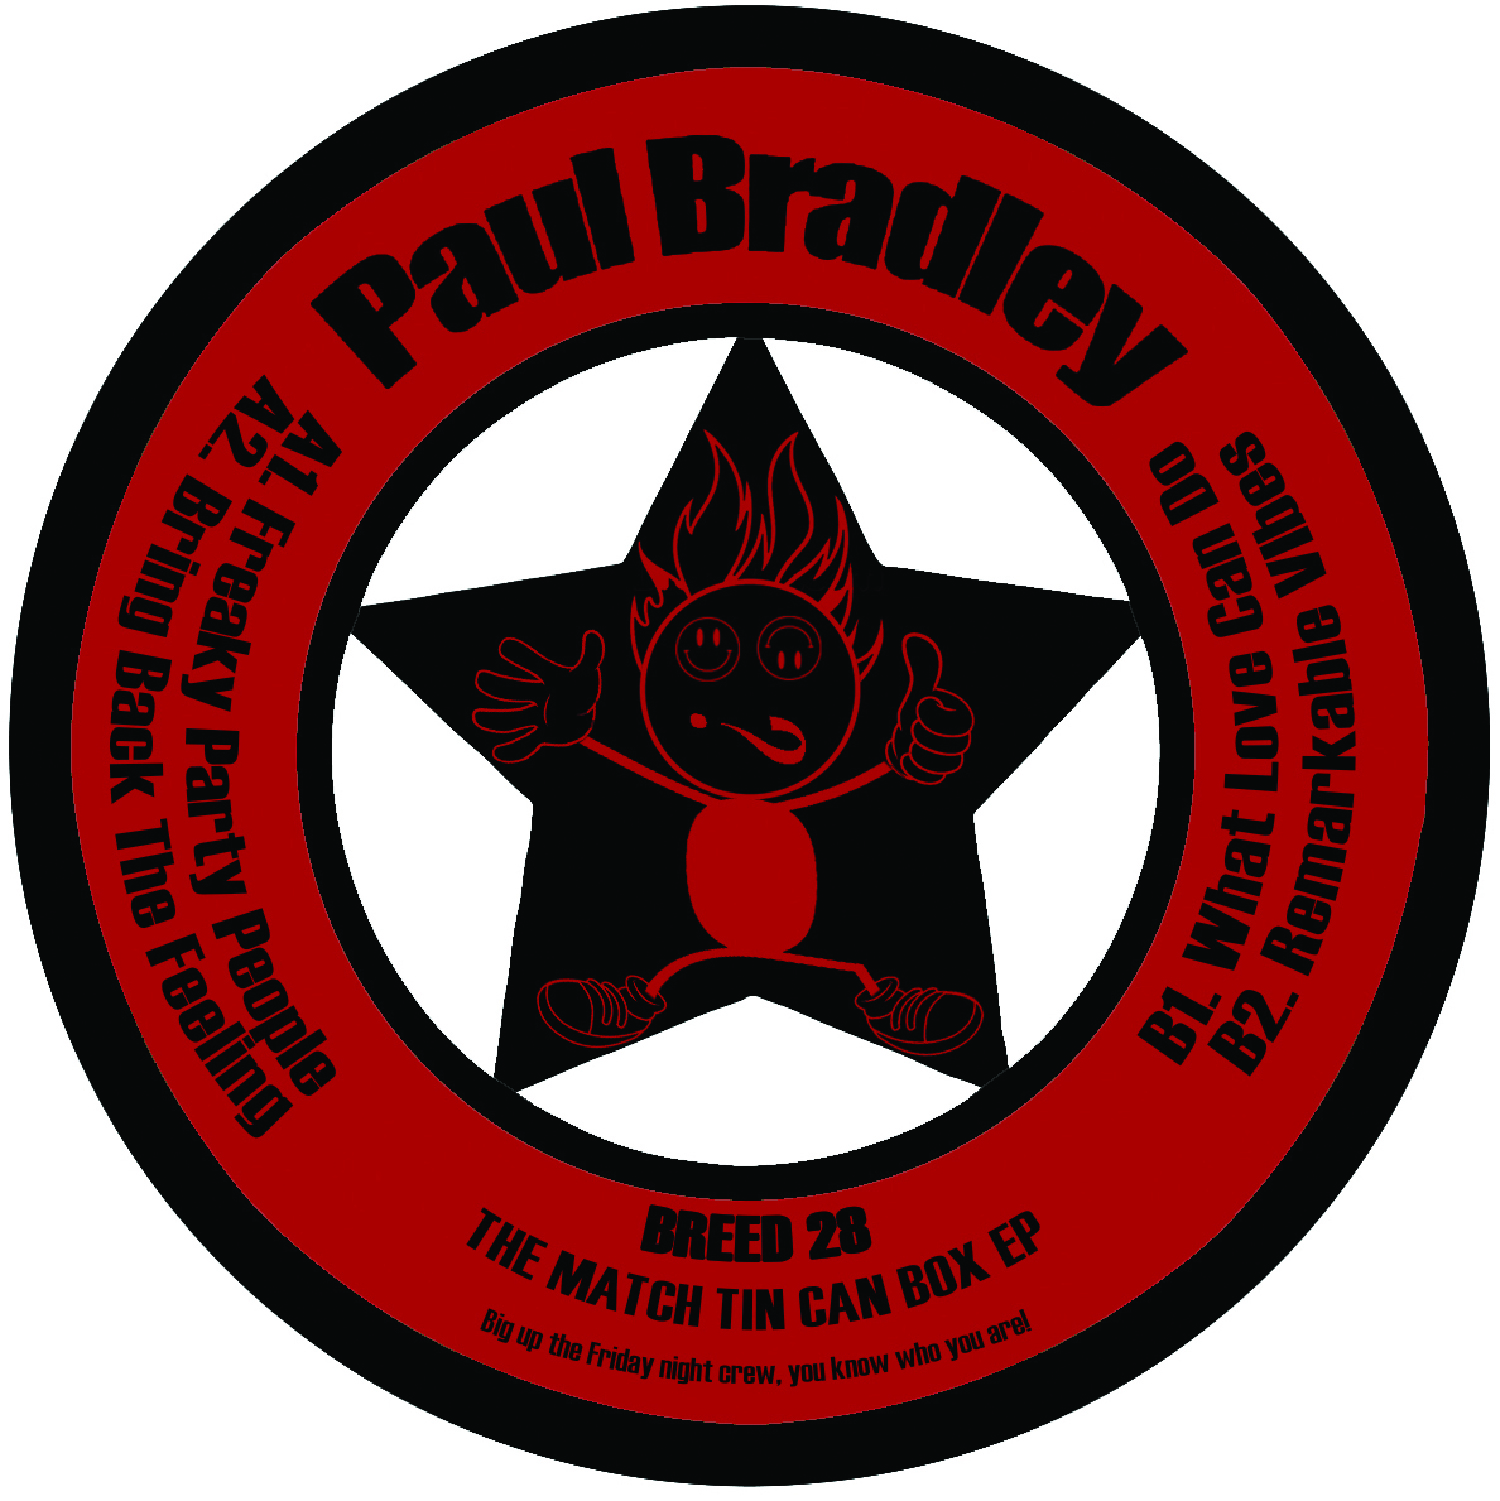 "[BREED028] Paul Bradley - The Match Tin Can Box EP (12"" Vinyl + Digital)"